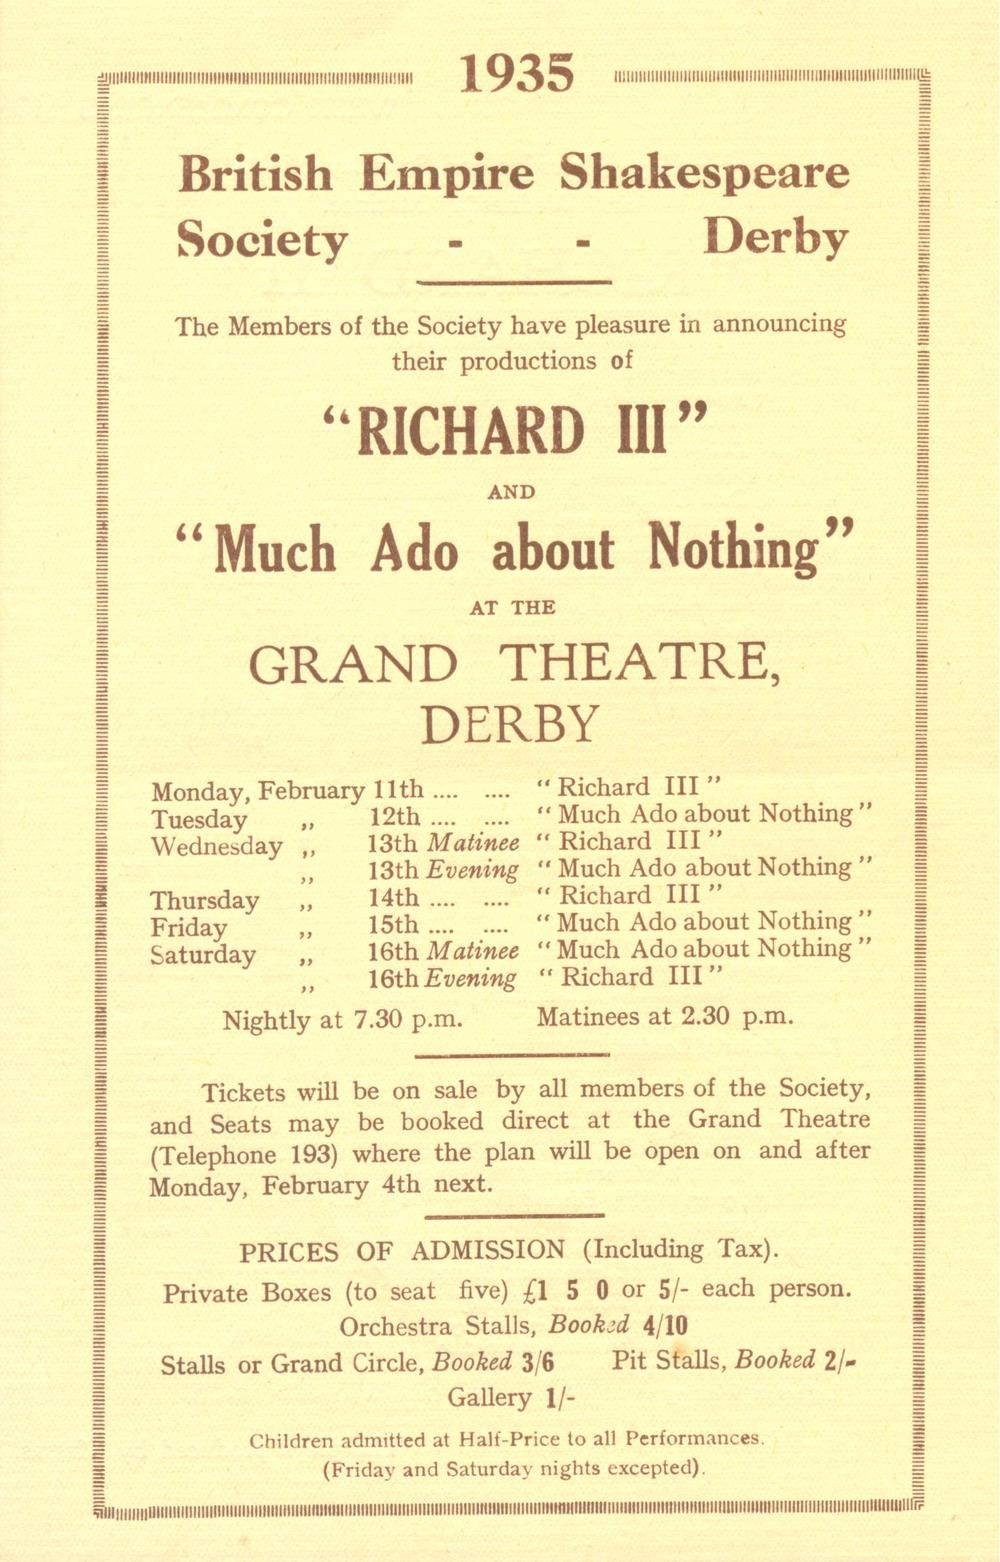 'Richard III' & 'Much Ado About Nothing' 1935